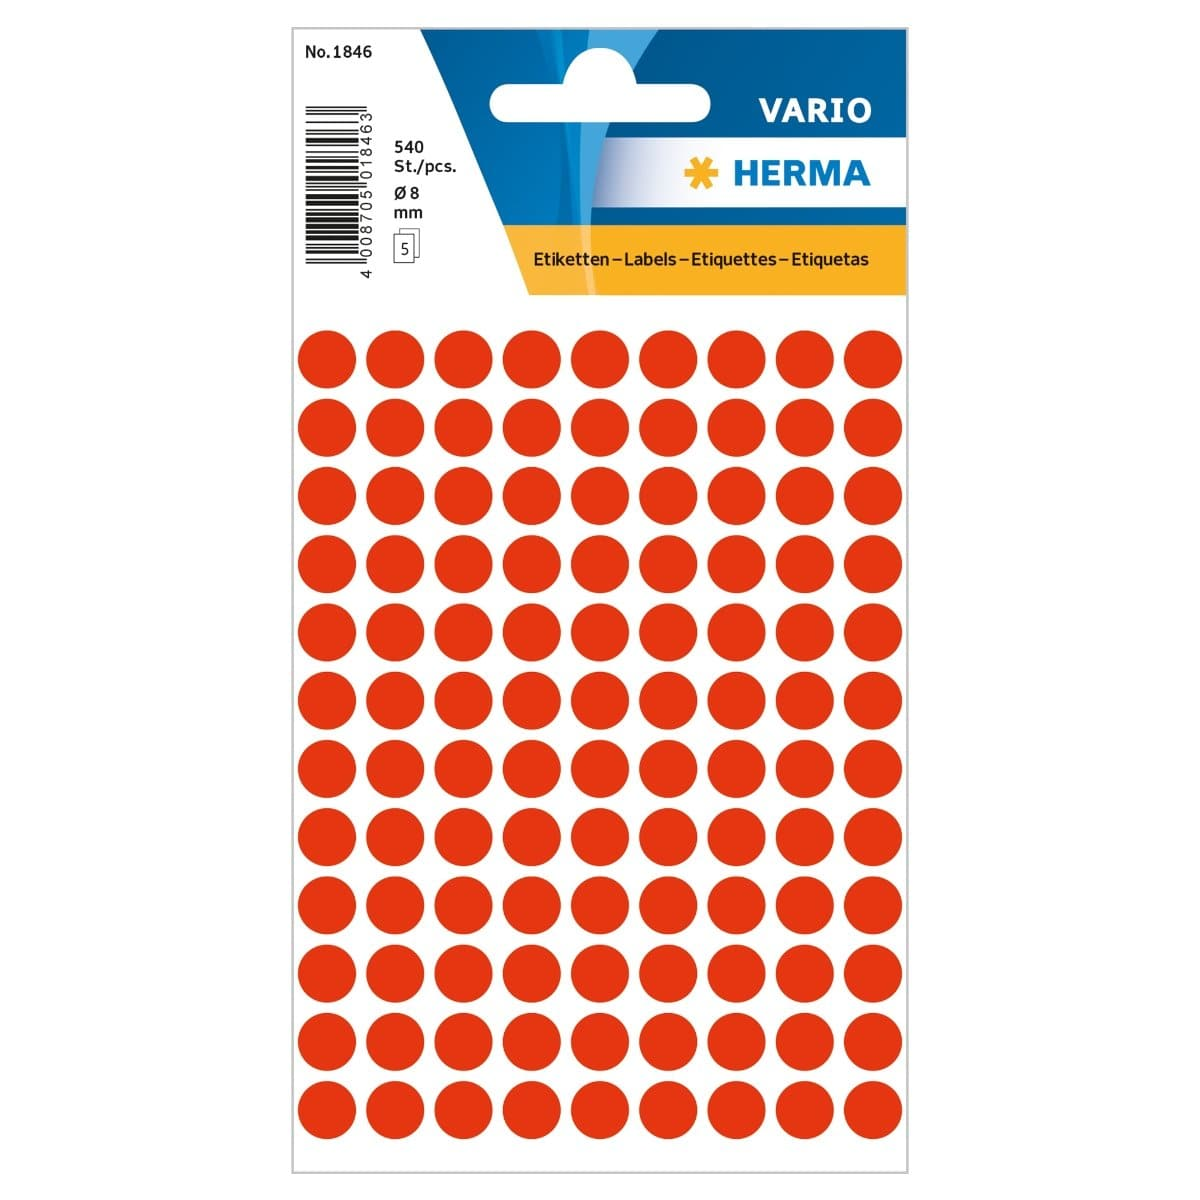 Herma Vario Sticker Color Dots, 8 mm, 540/pack, Fluo Red